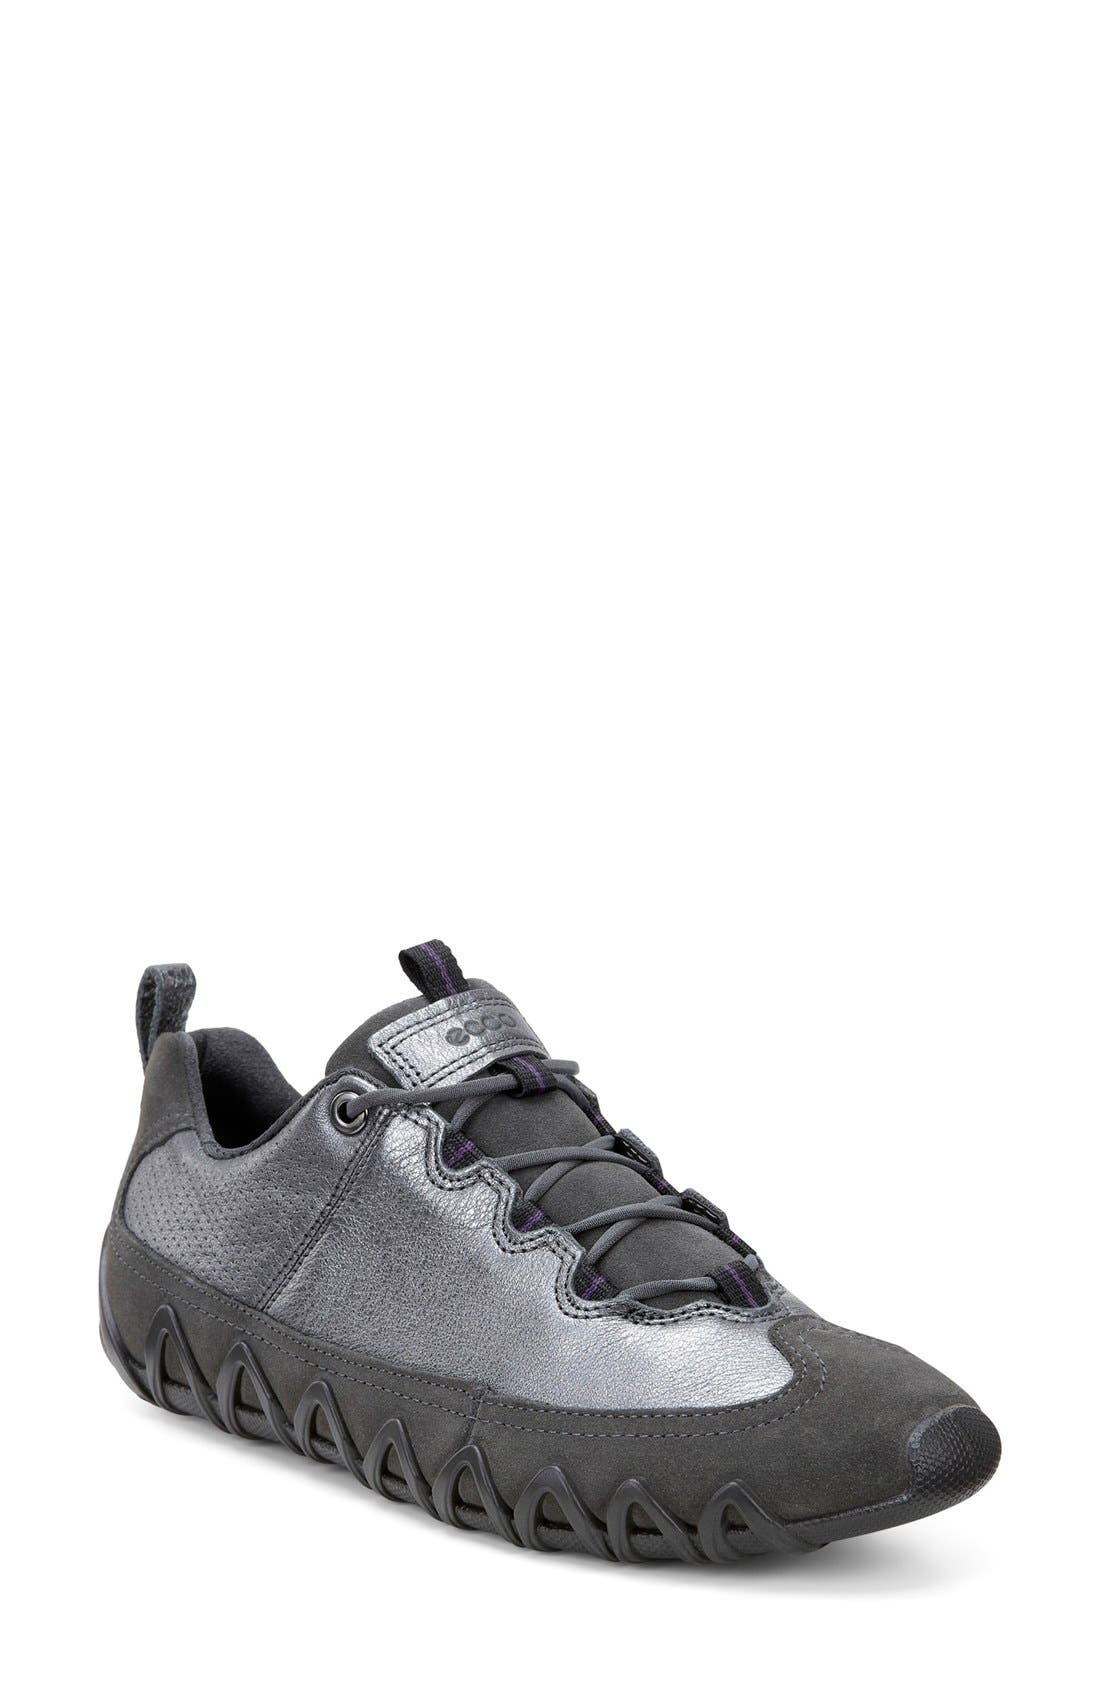 ECCO 'Dayla' Toggle Sneaker (Women)